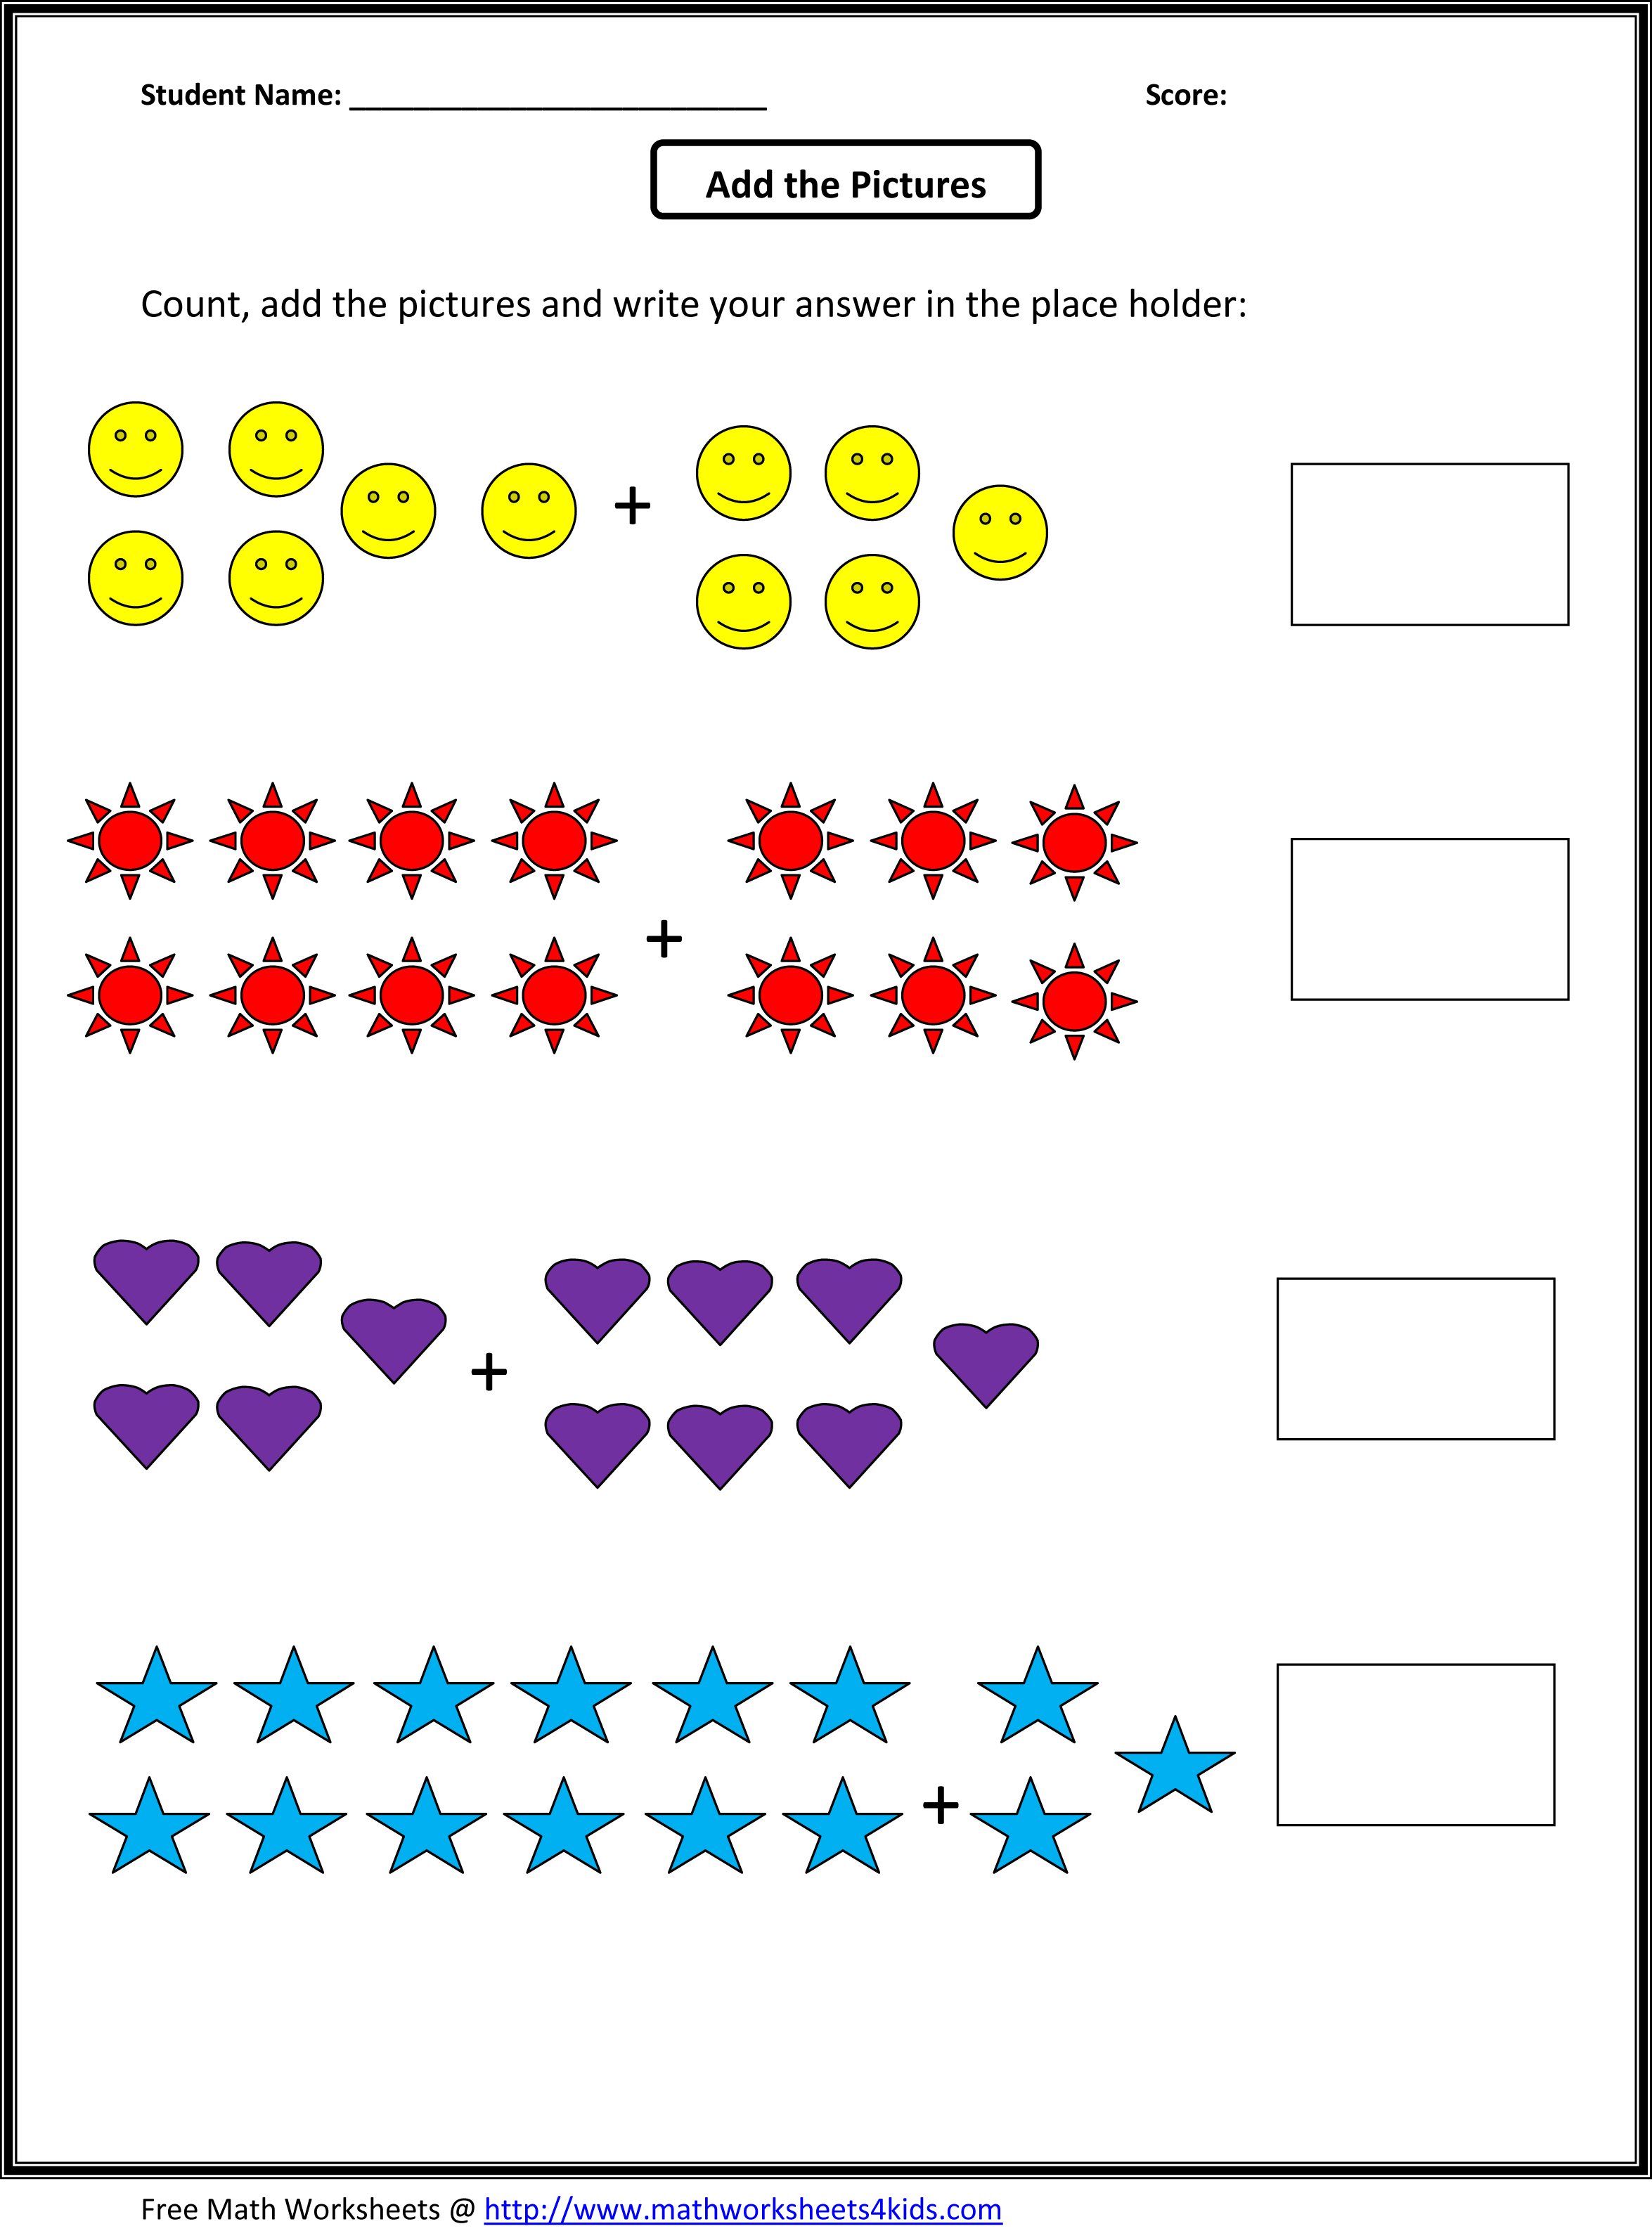 Weirdmailus  Outstanding Grade  Maths Worksheet  Reocurent With Excellent Math Worksheets For St Grade Free  Reocurent With Beautiful Church Budget Worksheet Also Debt Snowball Excel Worksheet In Addition Veterans Day Worksheets Free And Letter D Preschool Worksheets As Well As Powers And Exponents Worksheets Additionally Letter Reversal Worksheets From Reocurentcom With Weirdmailus  Excellent Grade  Maths Worksheet  Reocurent With Beautiful Math Worksheets For St Grade Free  Reocurent And Outstanding Church Budget Worksheet Also Debt Snowball Excel Worksheet In Addition Veterans Day Worksheets Free From Reocurentcom